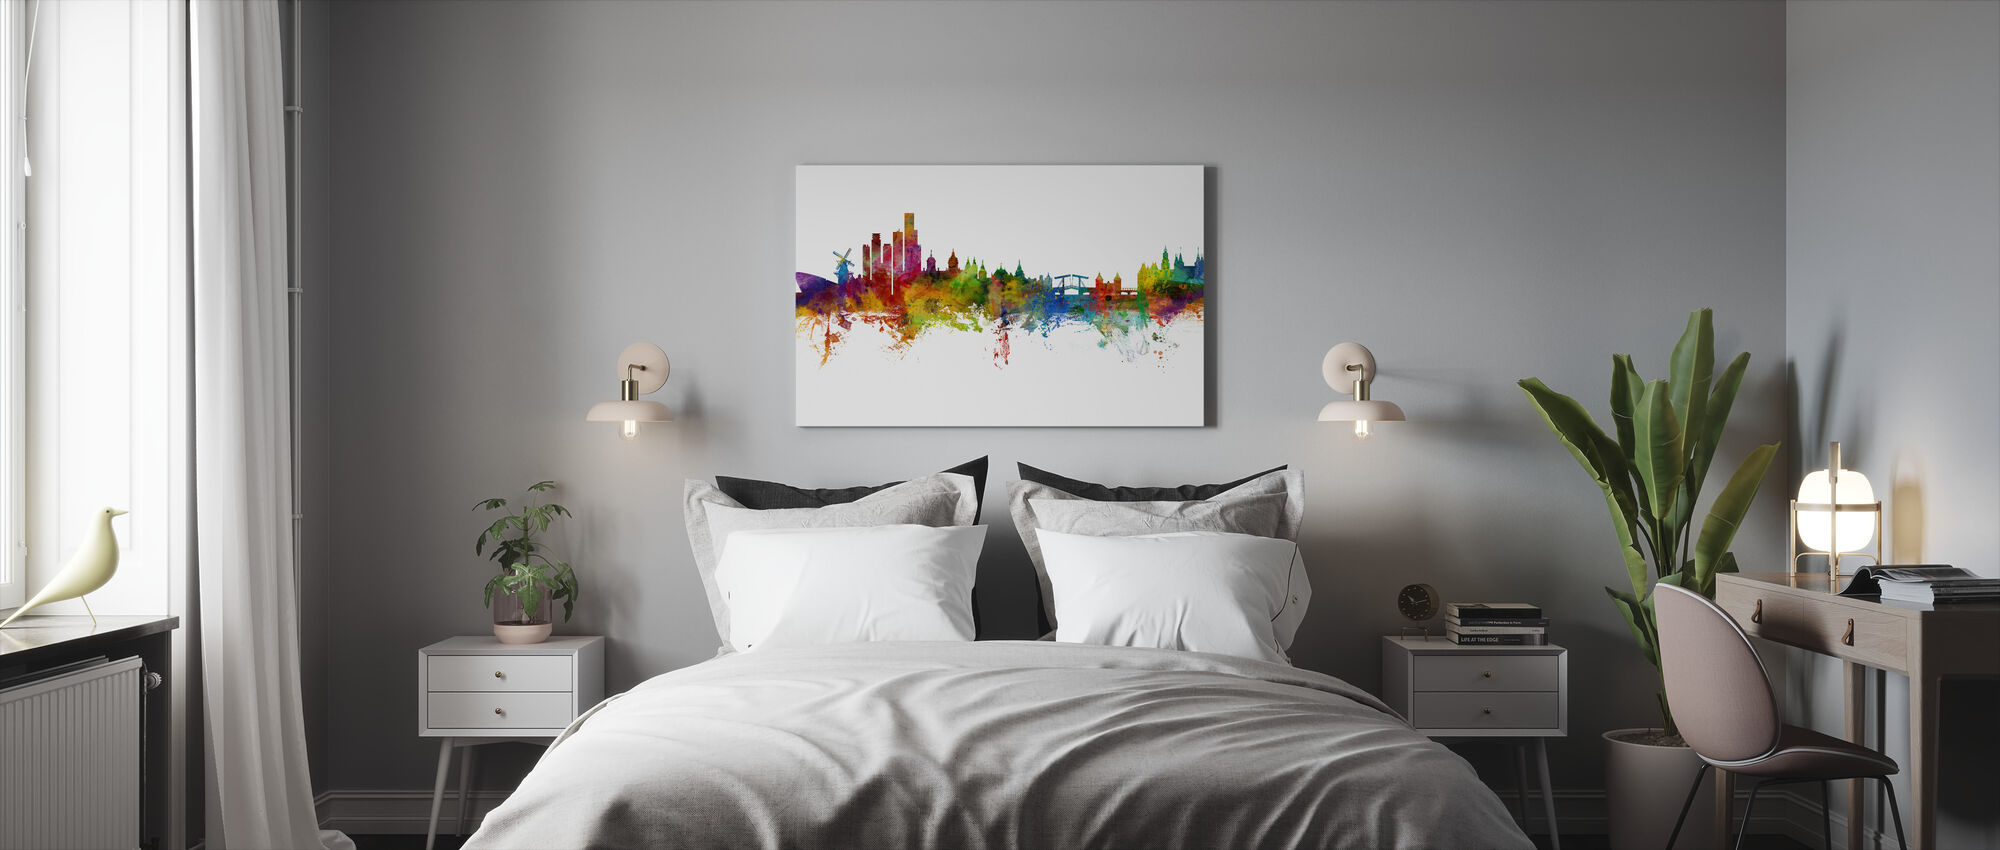 Amsterdam Skyline windmill - Canvas print - Bedroom